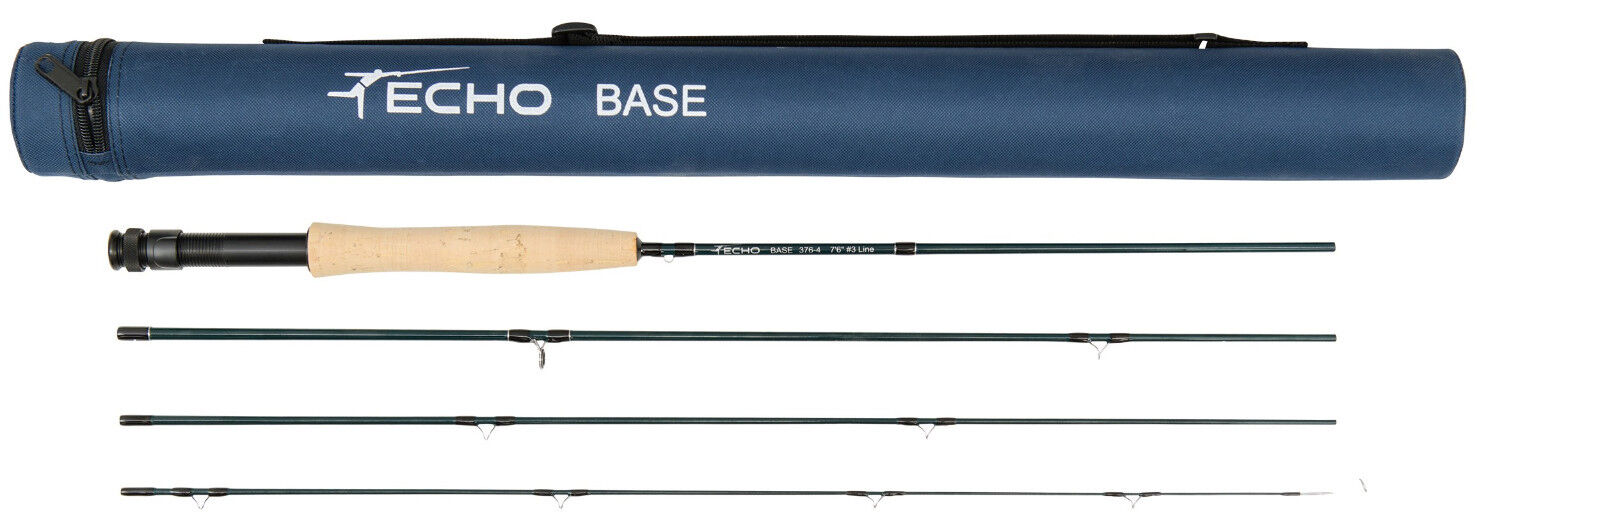 Echo Base Fly Rod with Free Shipping and No Sales Tax